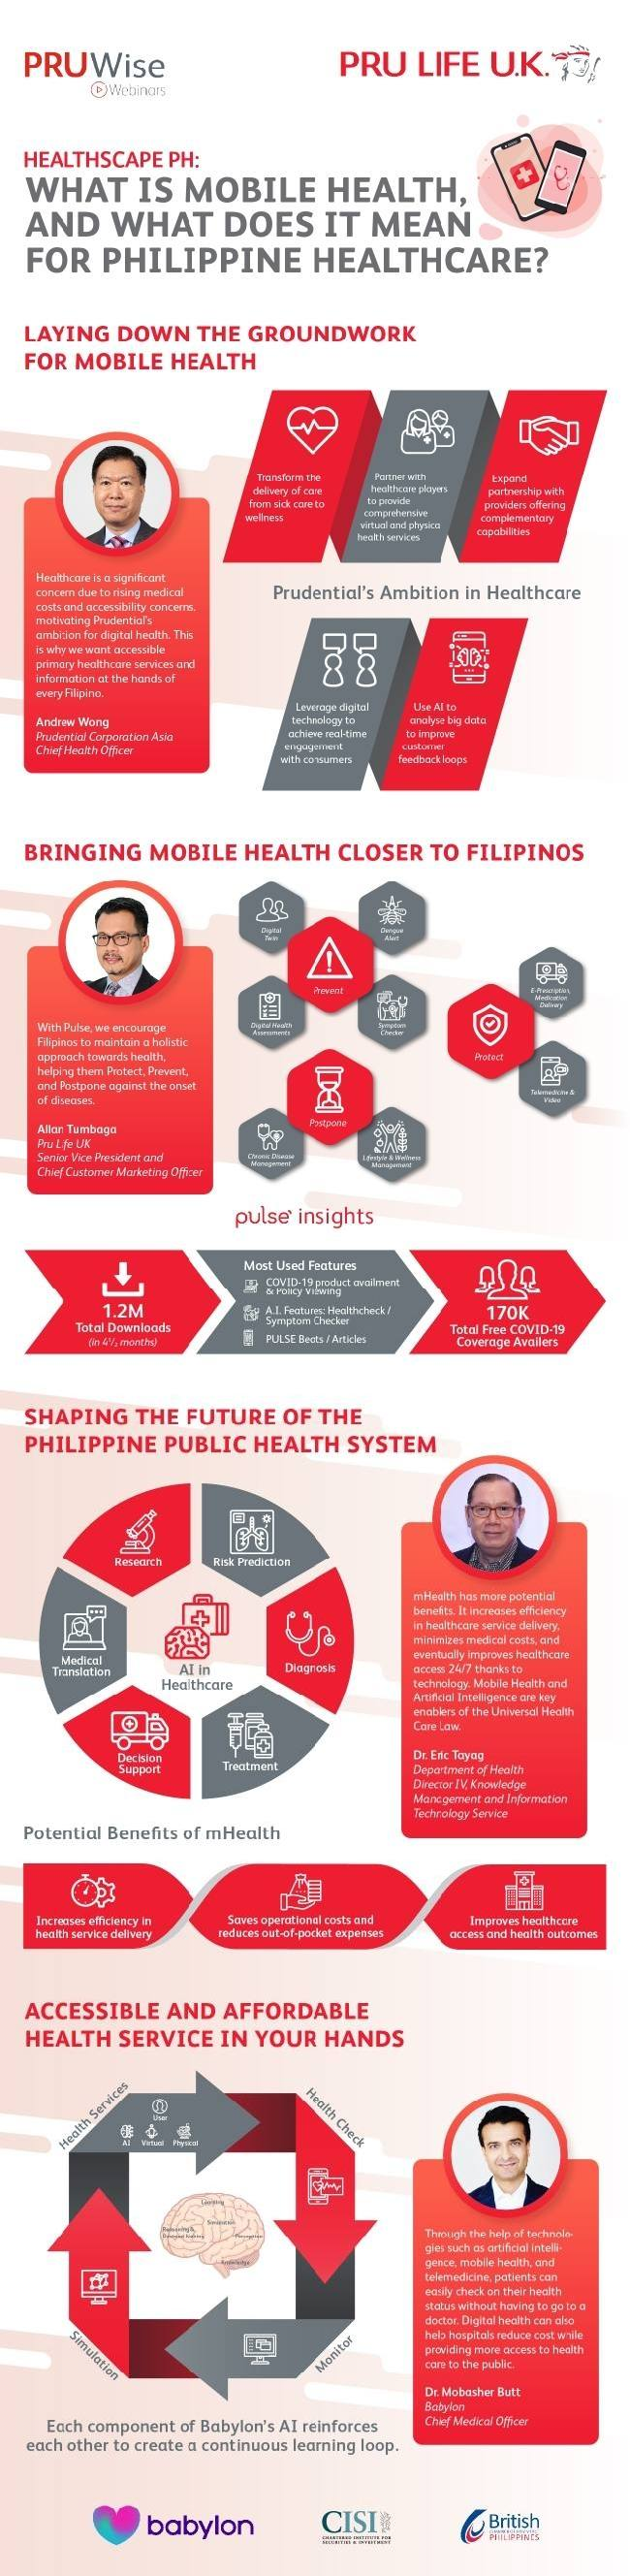 Pru Life UK pushes digital health in Philippines